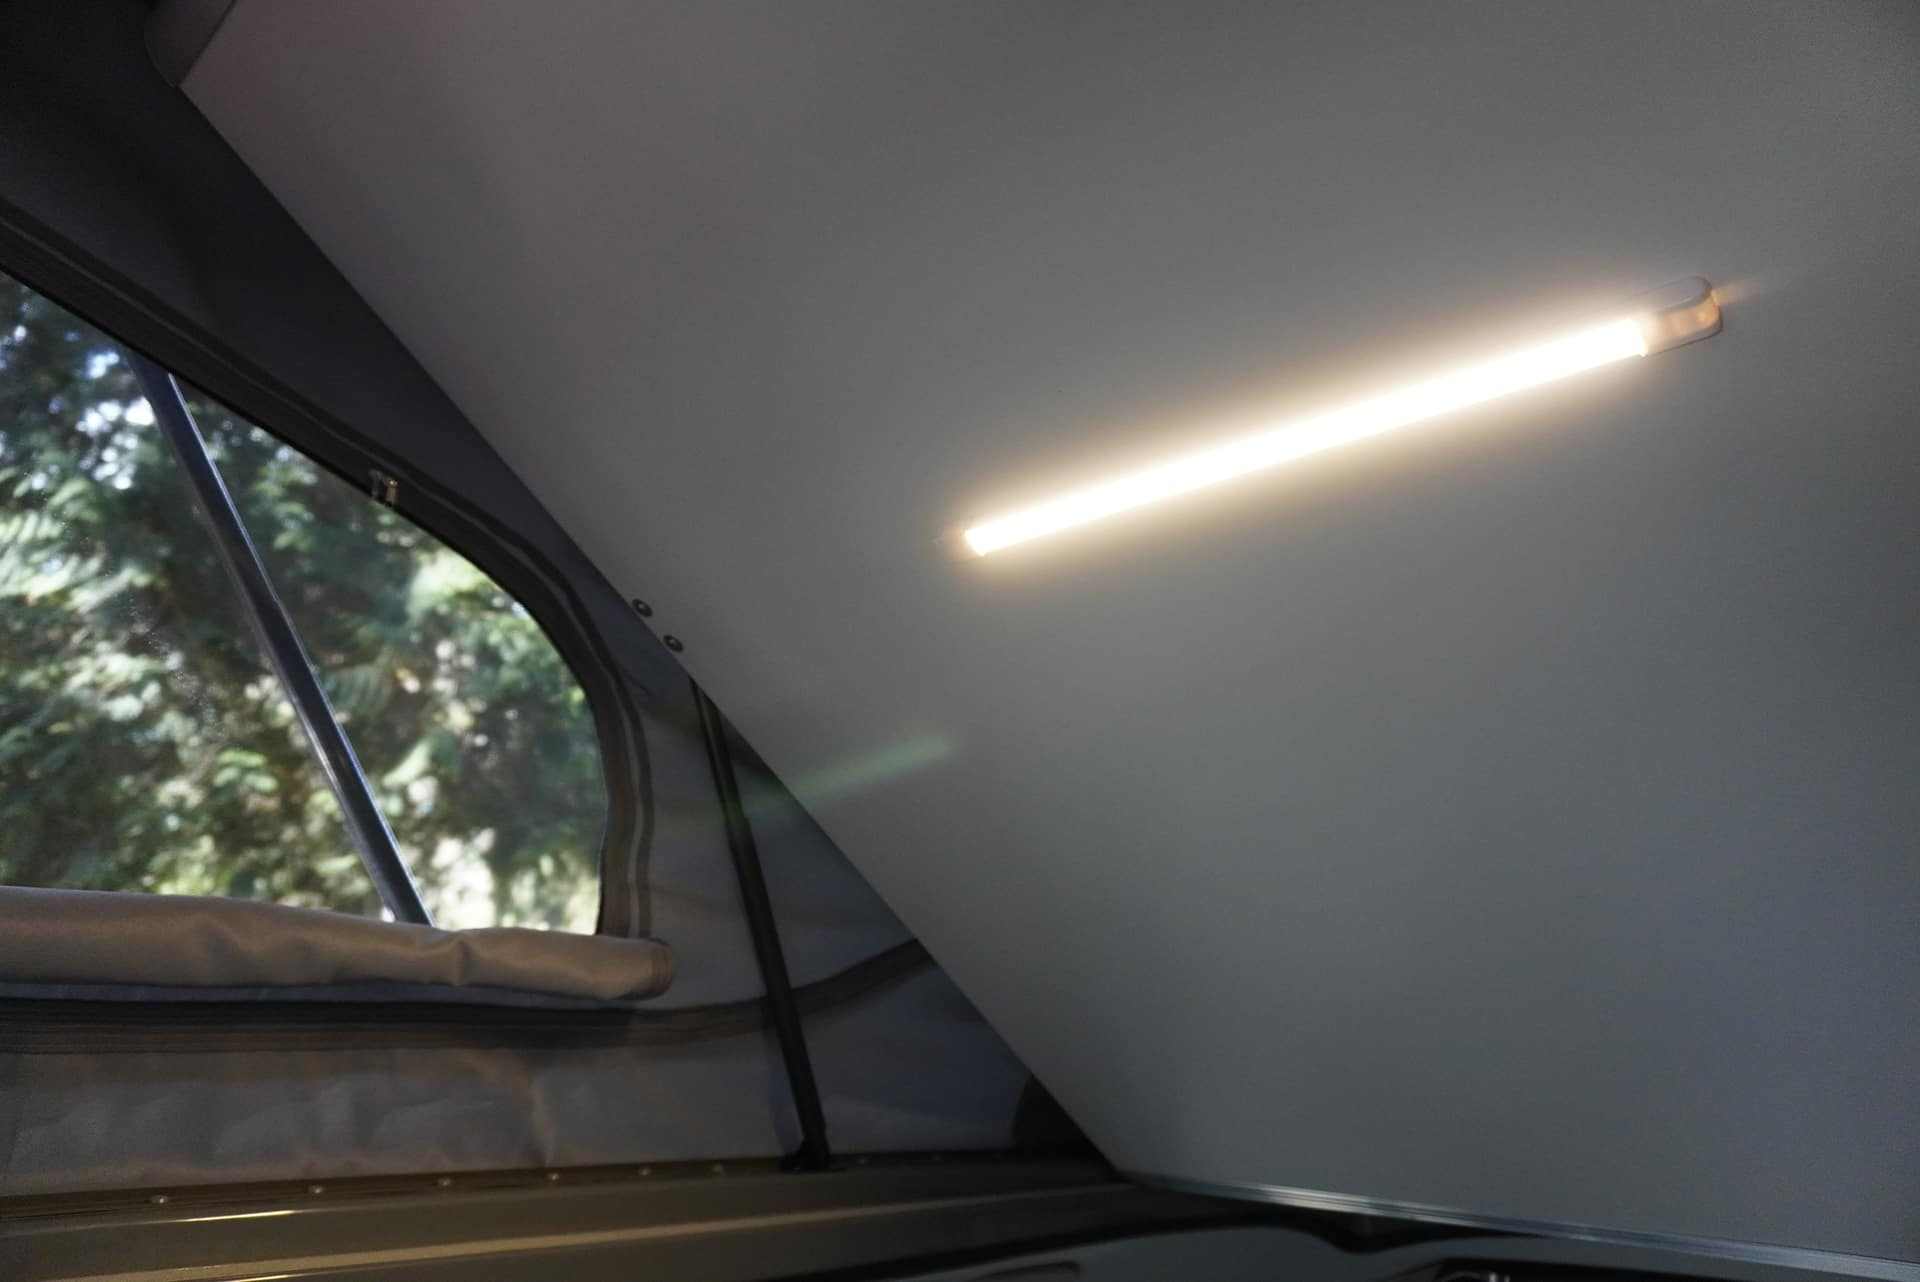 Interior Lighting - Under Bed/Ceiling